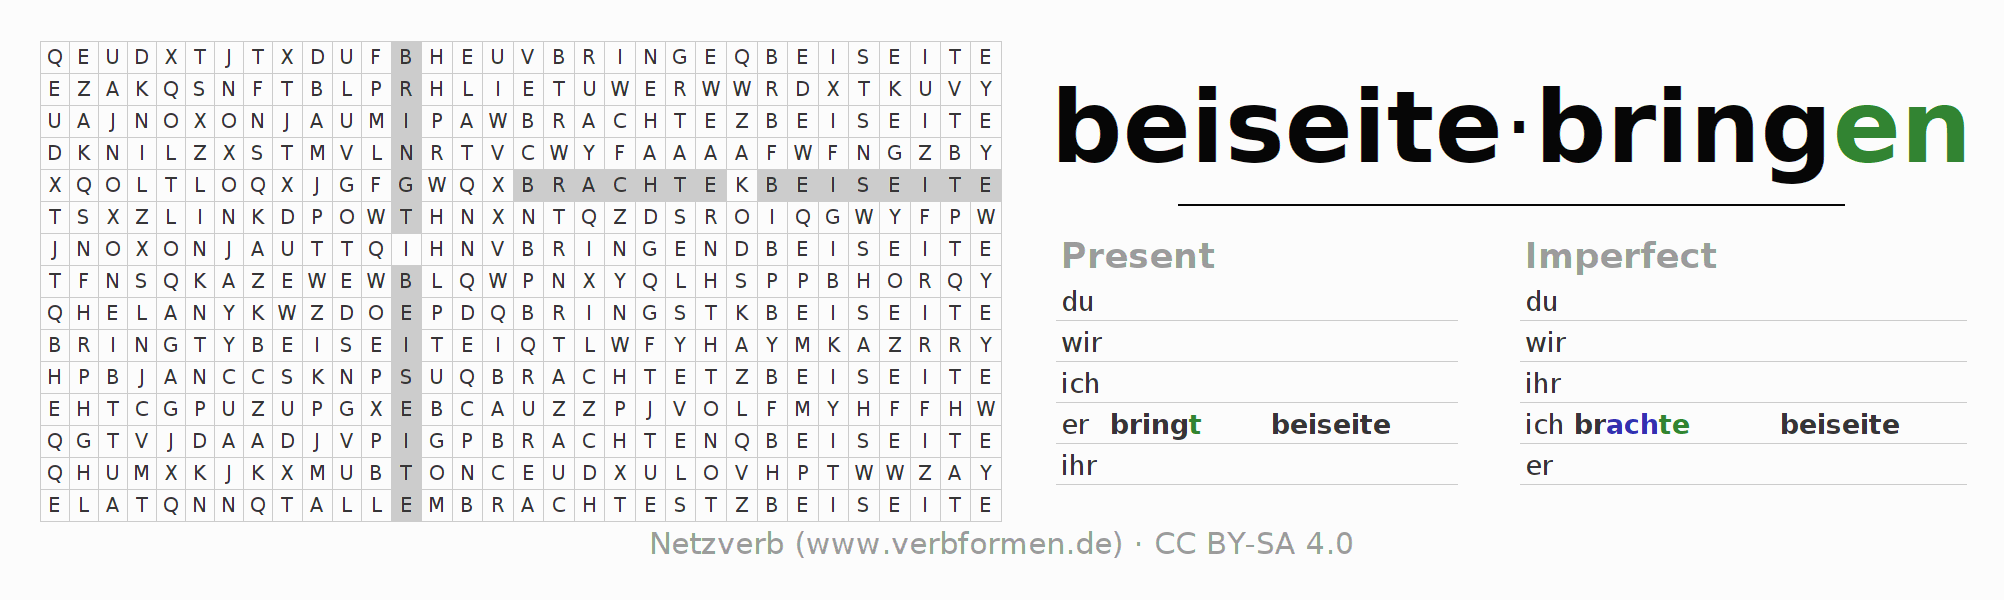 Word search puzzle for the conjugation of the verb beiseitebringen